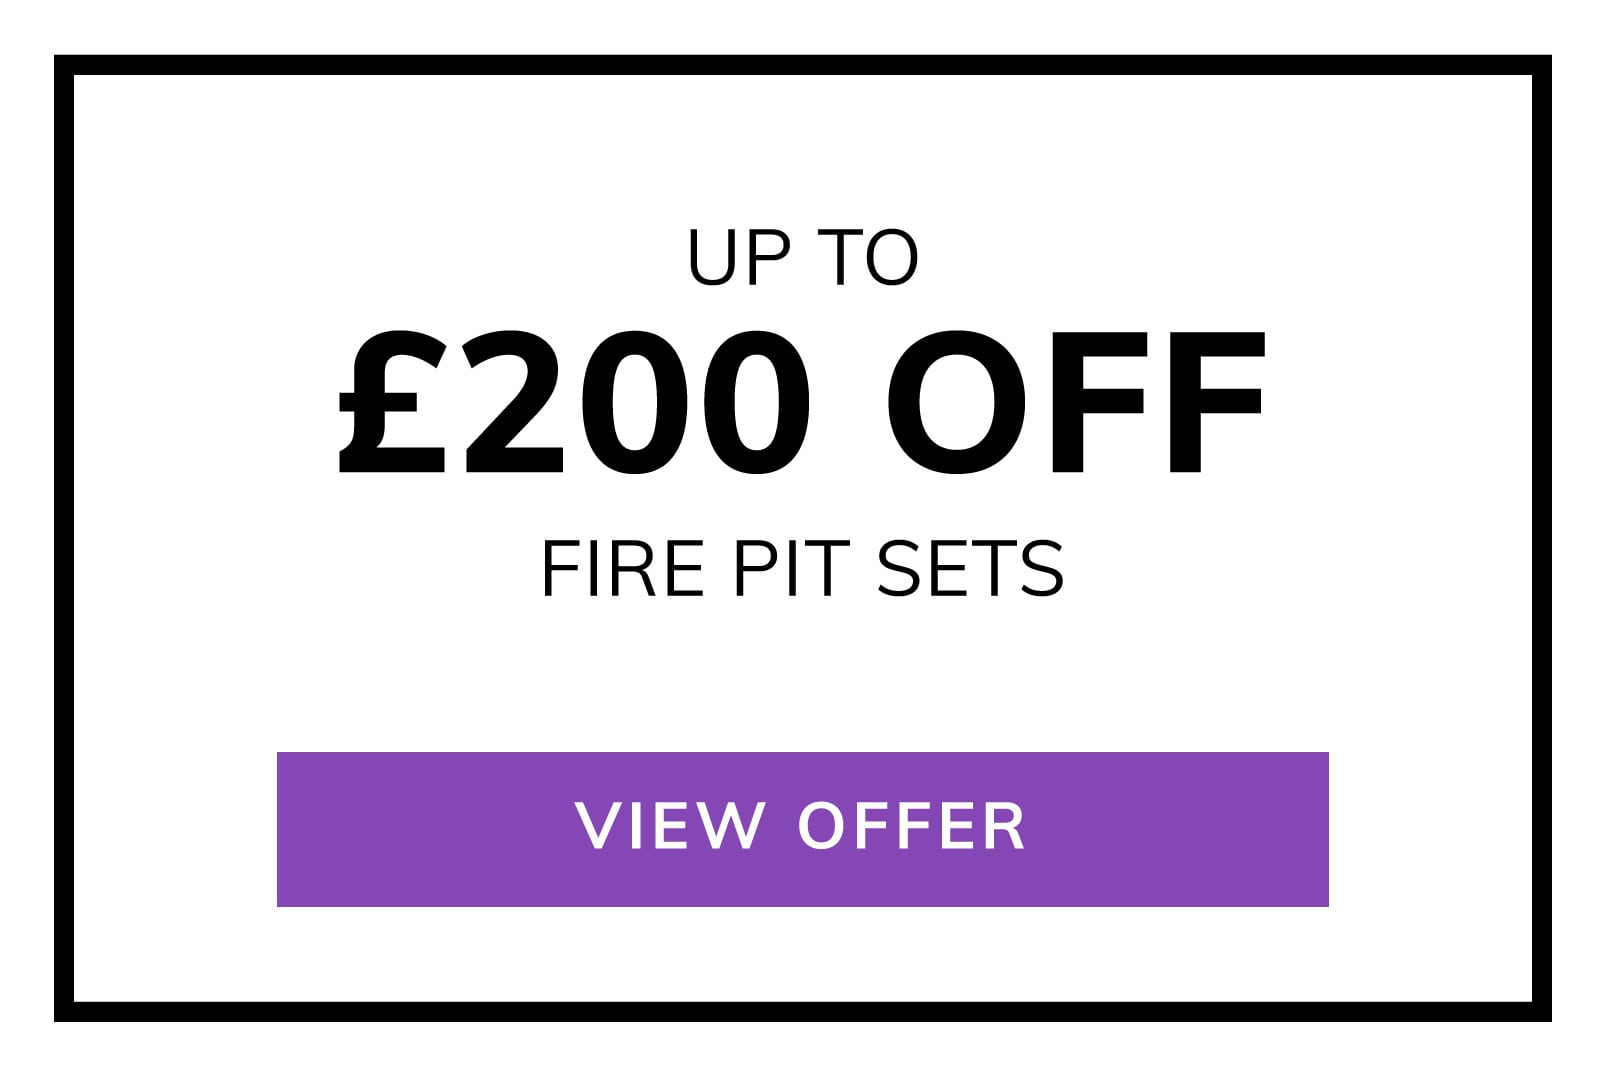 Up to £200 OFF Fire Pit Sets